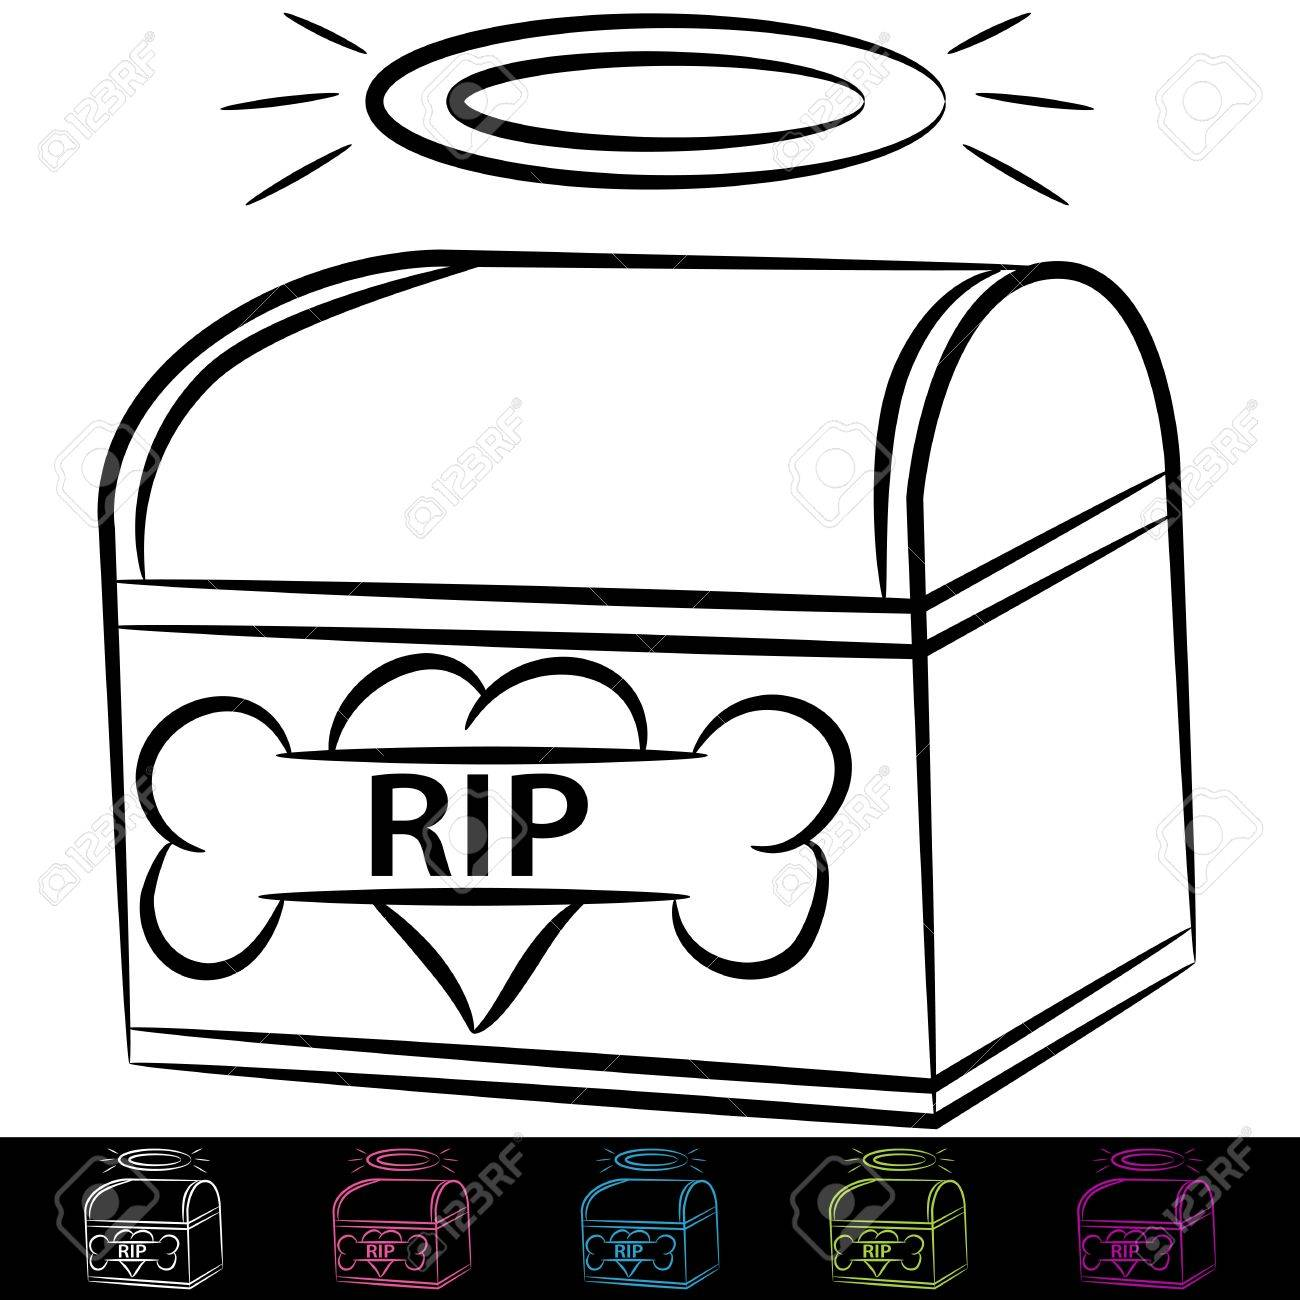 An image of a dog cremation box royalty free cliparts vectors and an image of a dog cremation box stock vector 14394307 buycottarizona Gallery